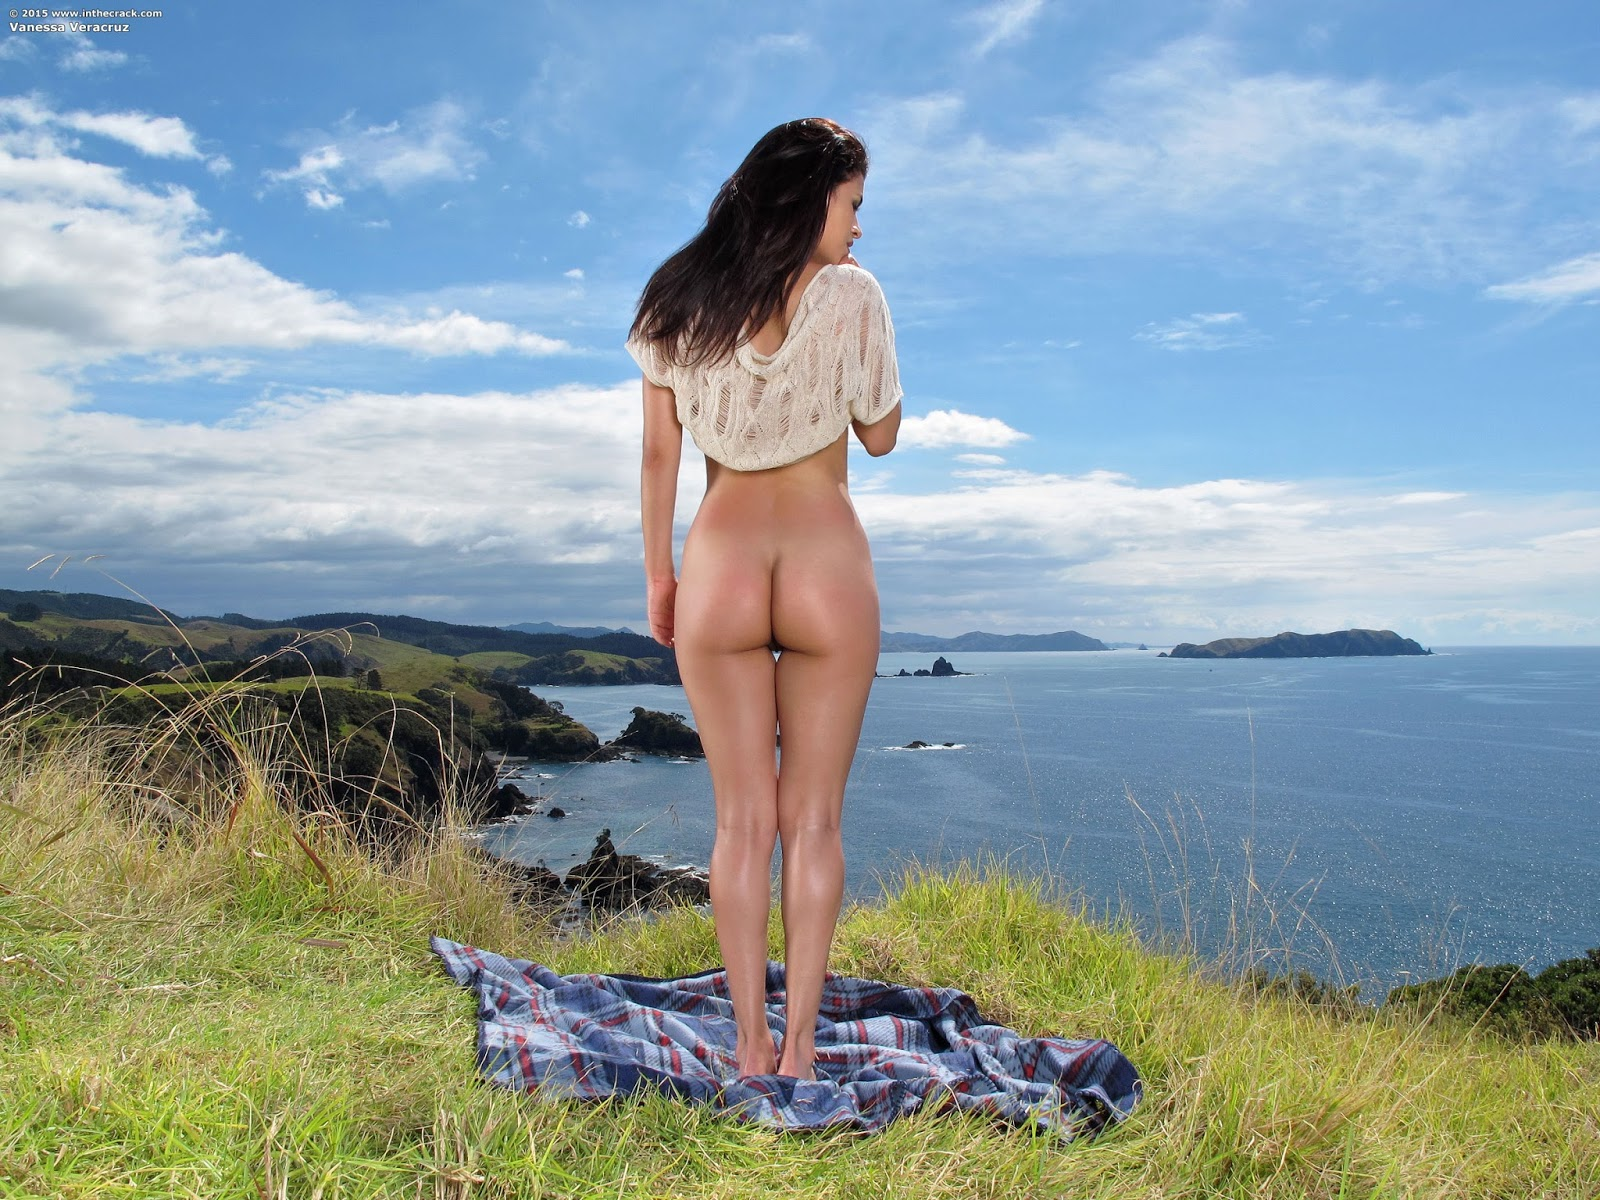 butt-naked-outdoors